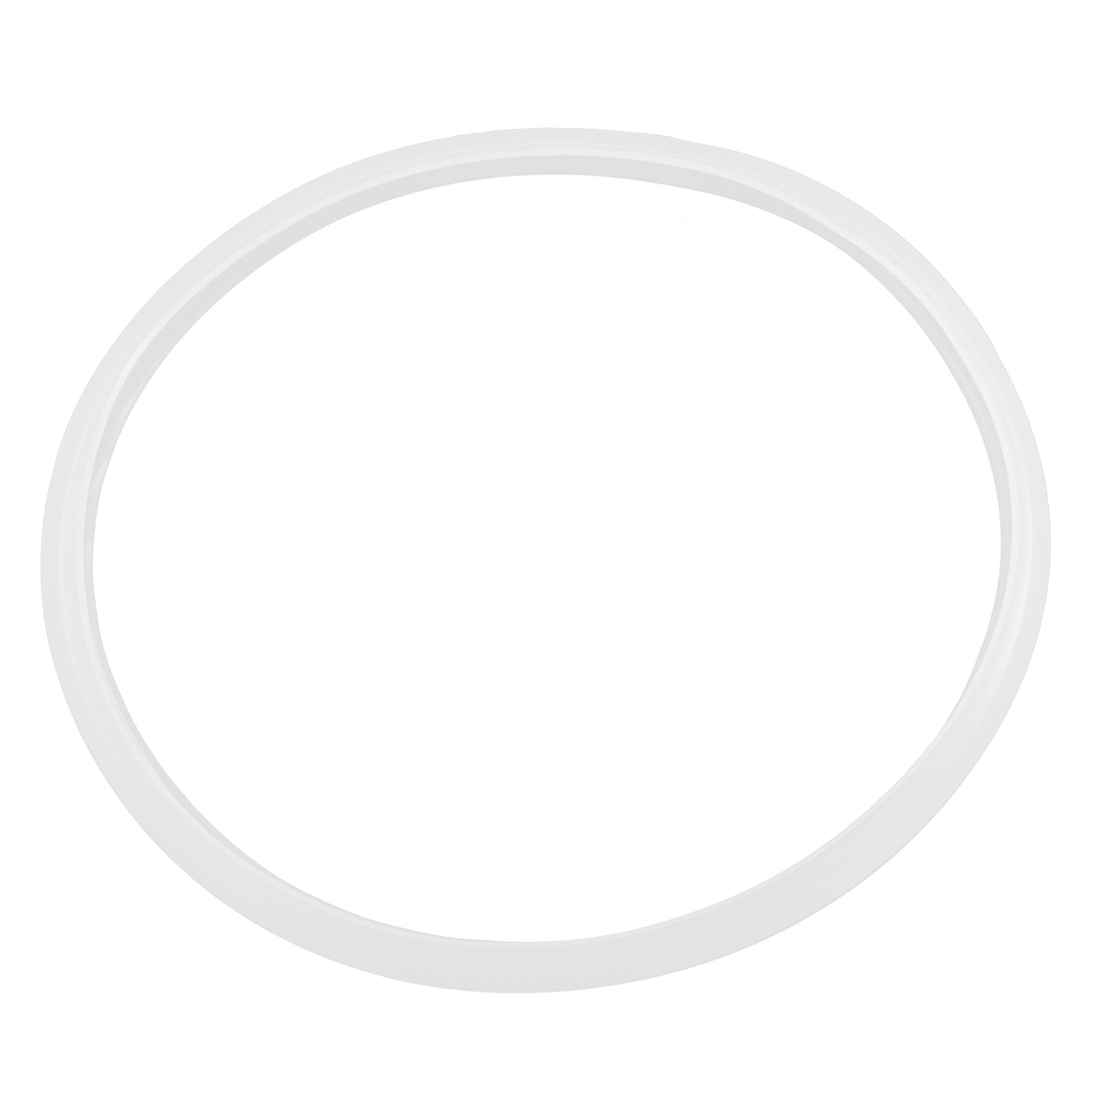 20cm Internal Diameter Silicone Gasket Sealing Ring for Pressure Cooker